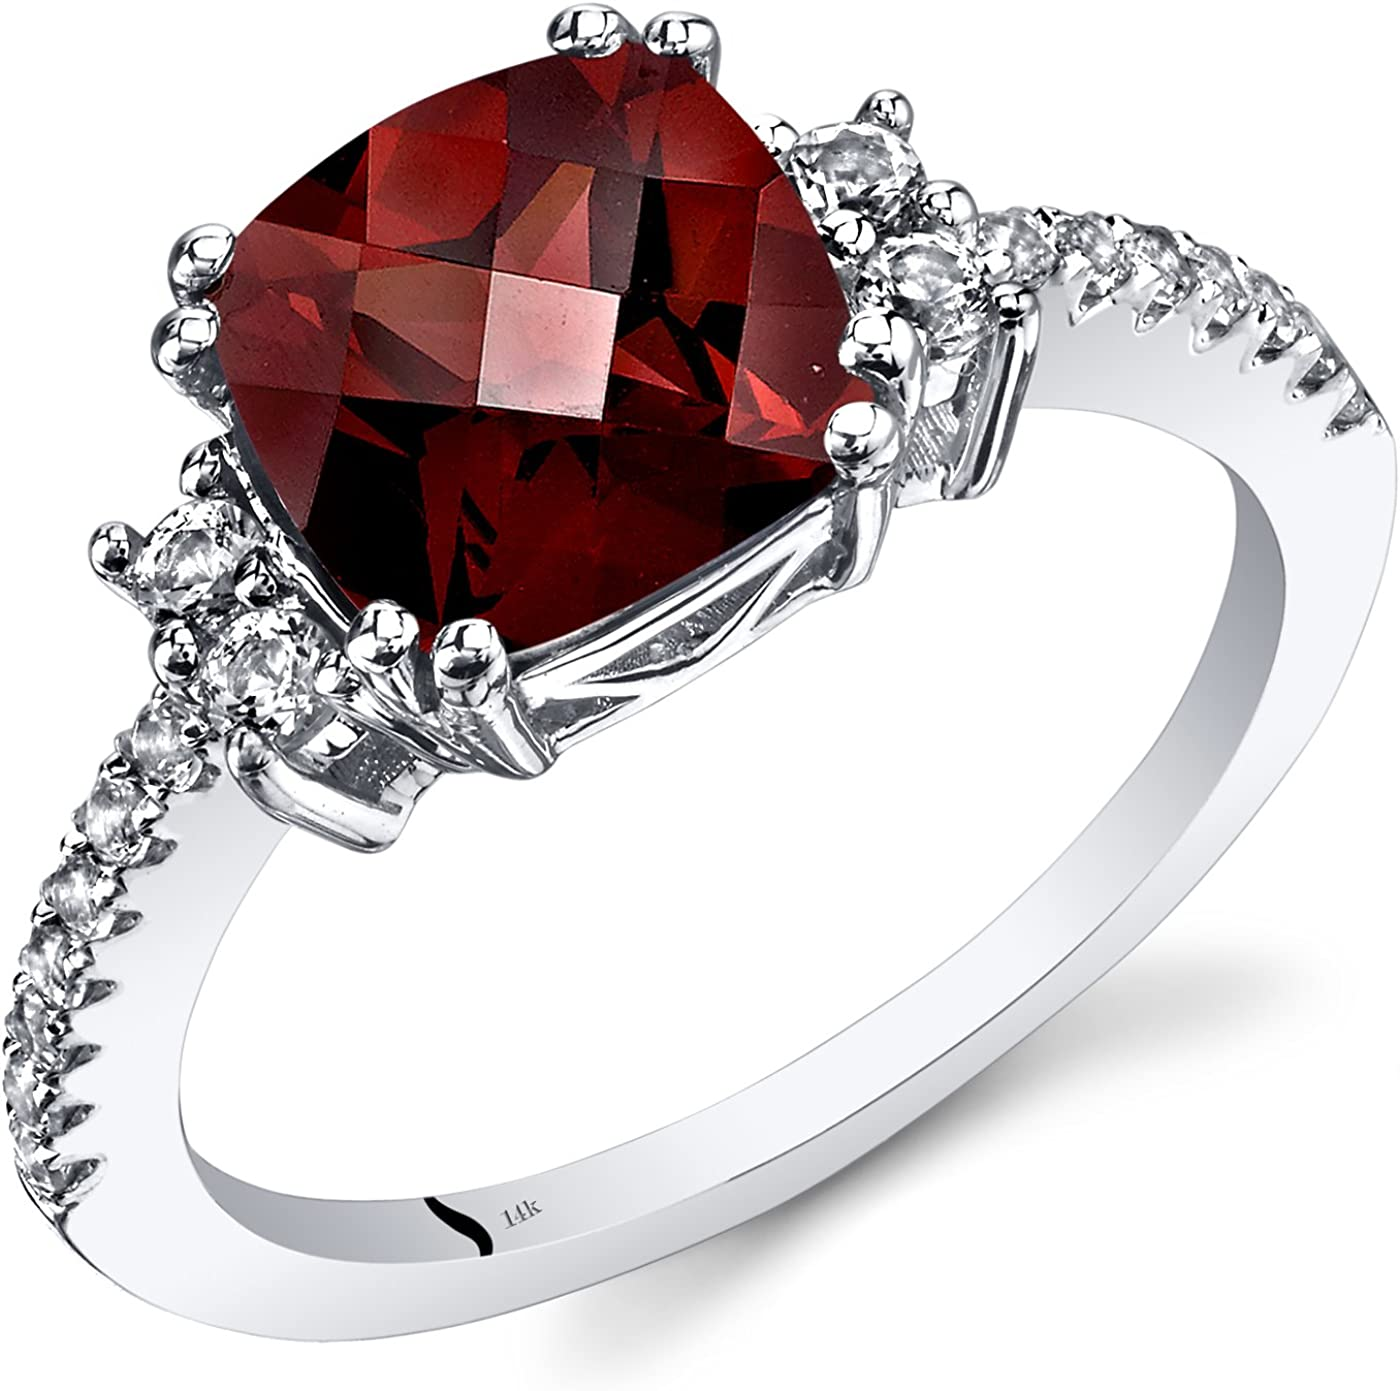 Womens Gemstone 5 Stone Wedding Ring with Red Garnet 14K White Gold Plated